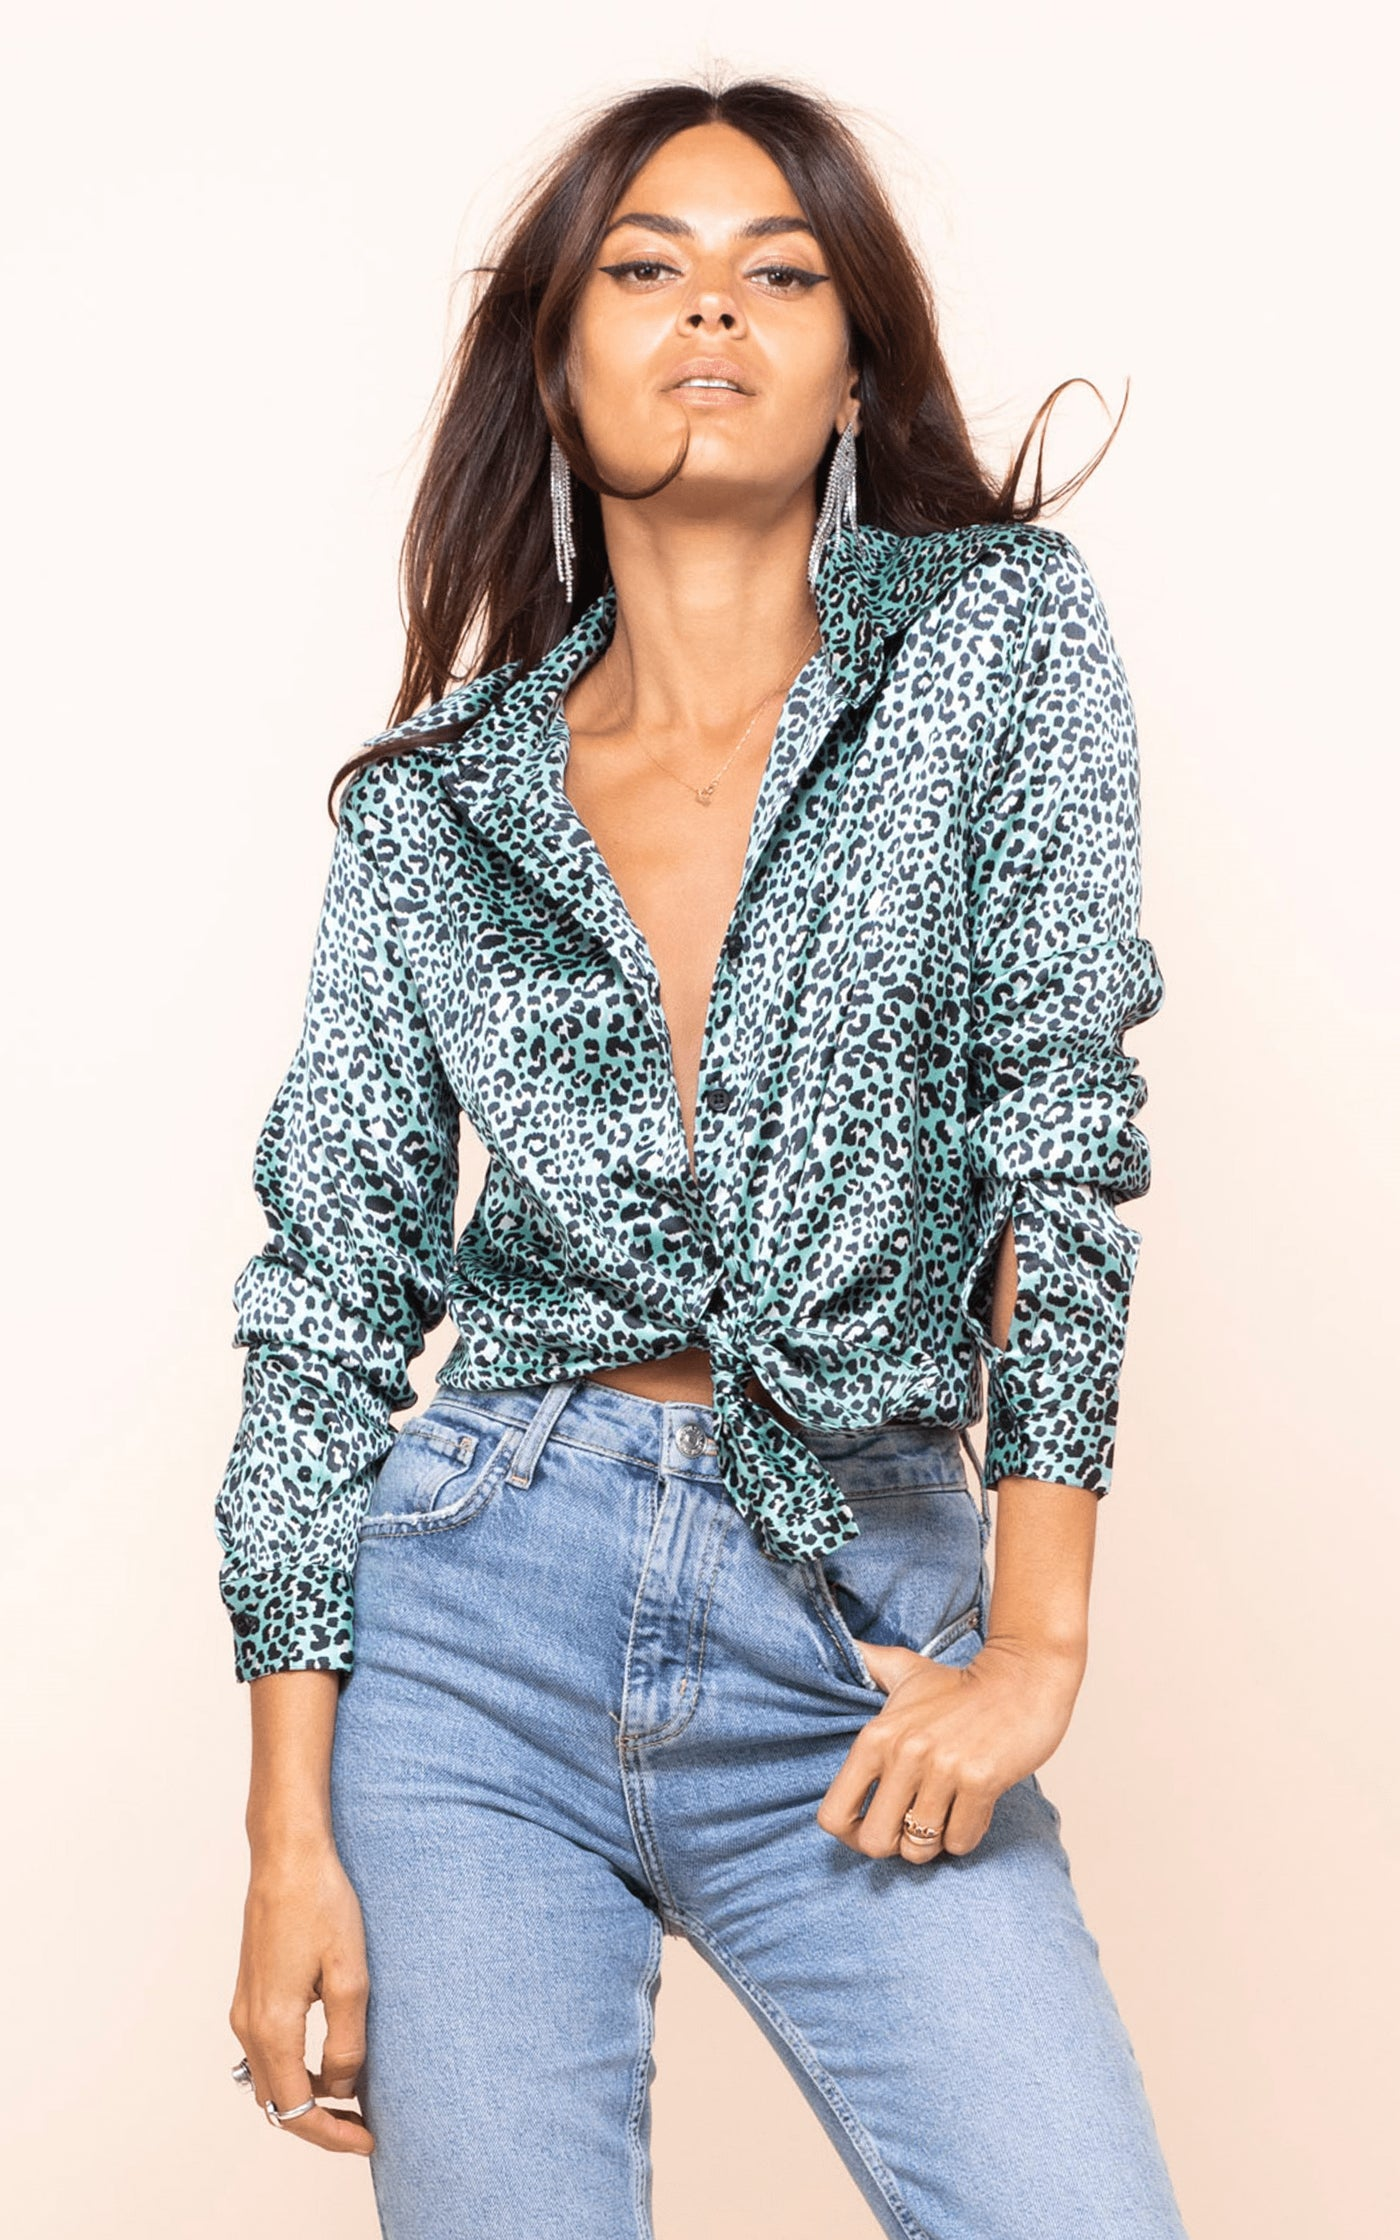 Dancing Leopard model faces forward wearing Nevada Shirt in mint ditzy leopard print with jeans